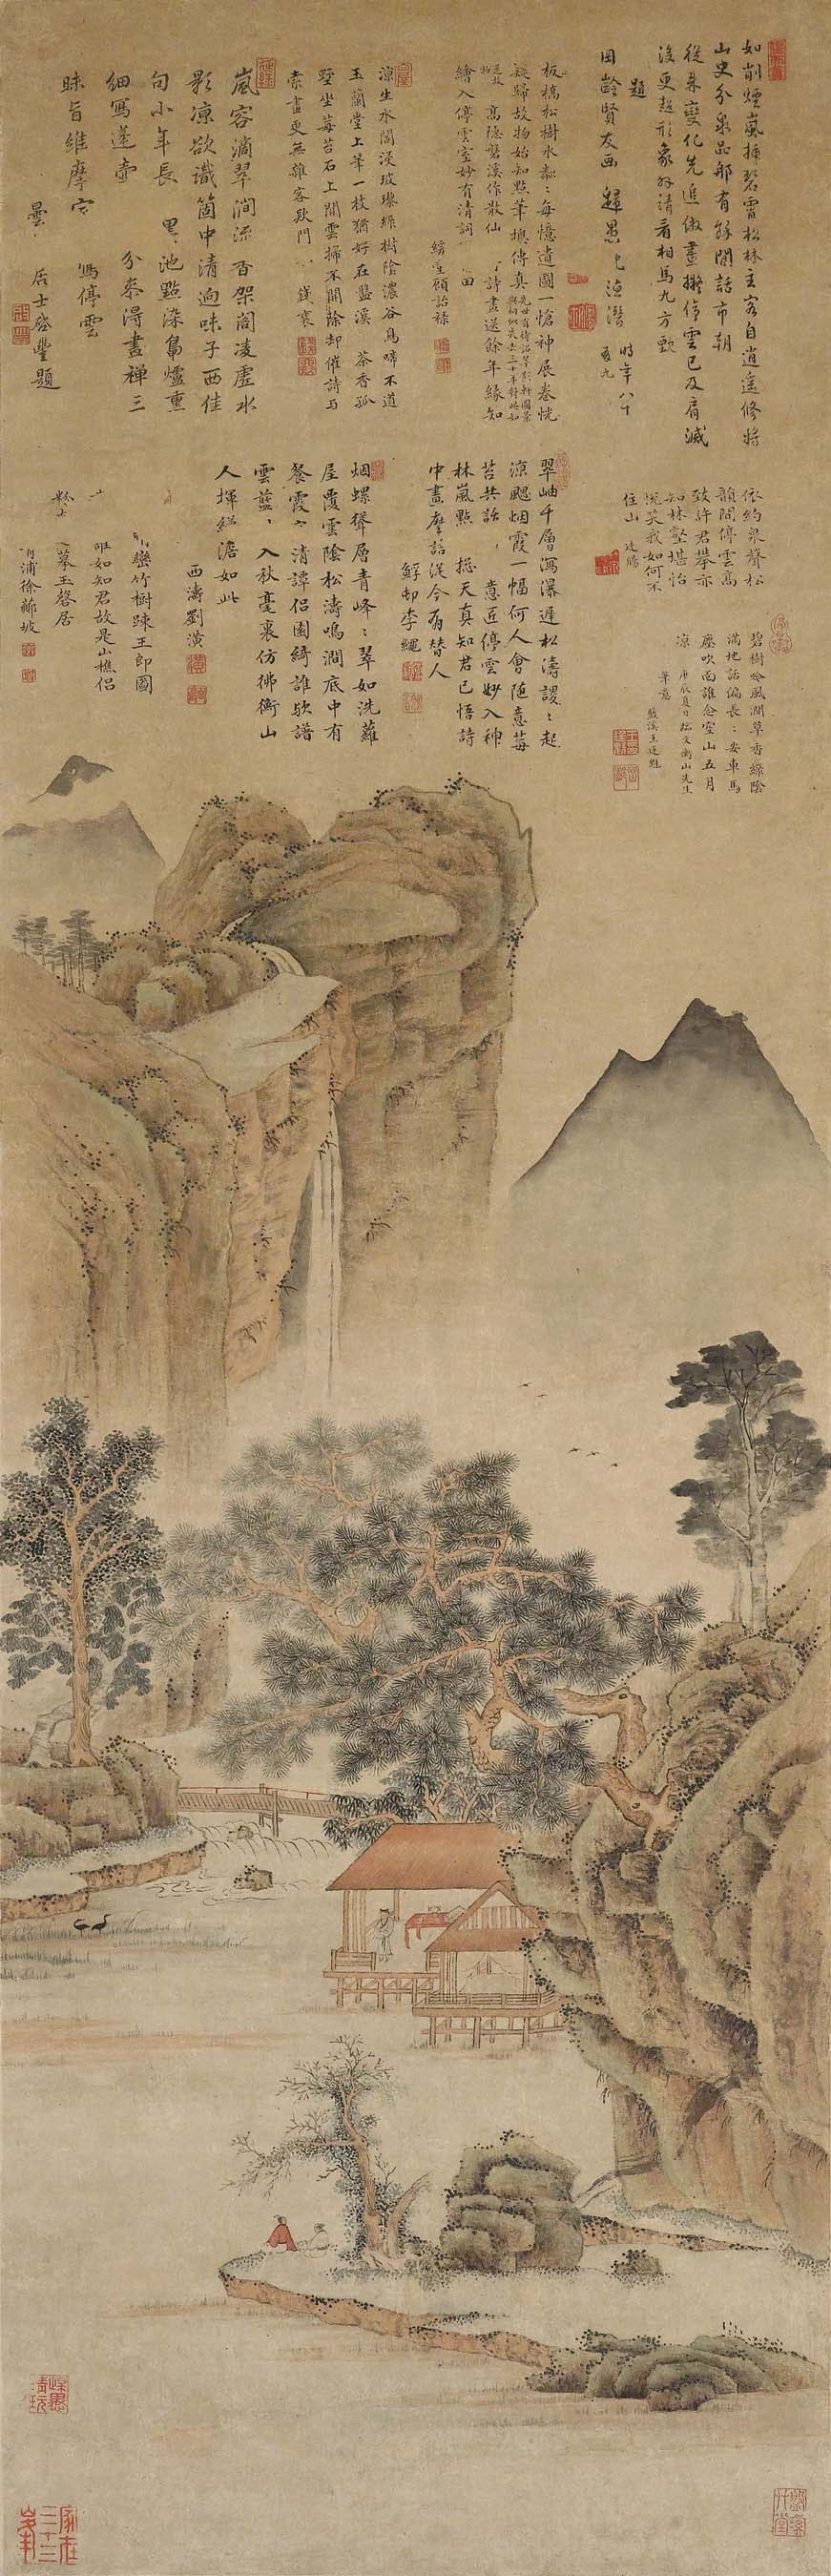 WANG TINGKUI (17TH-18TH CENTURY)